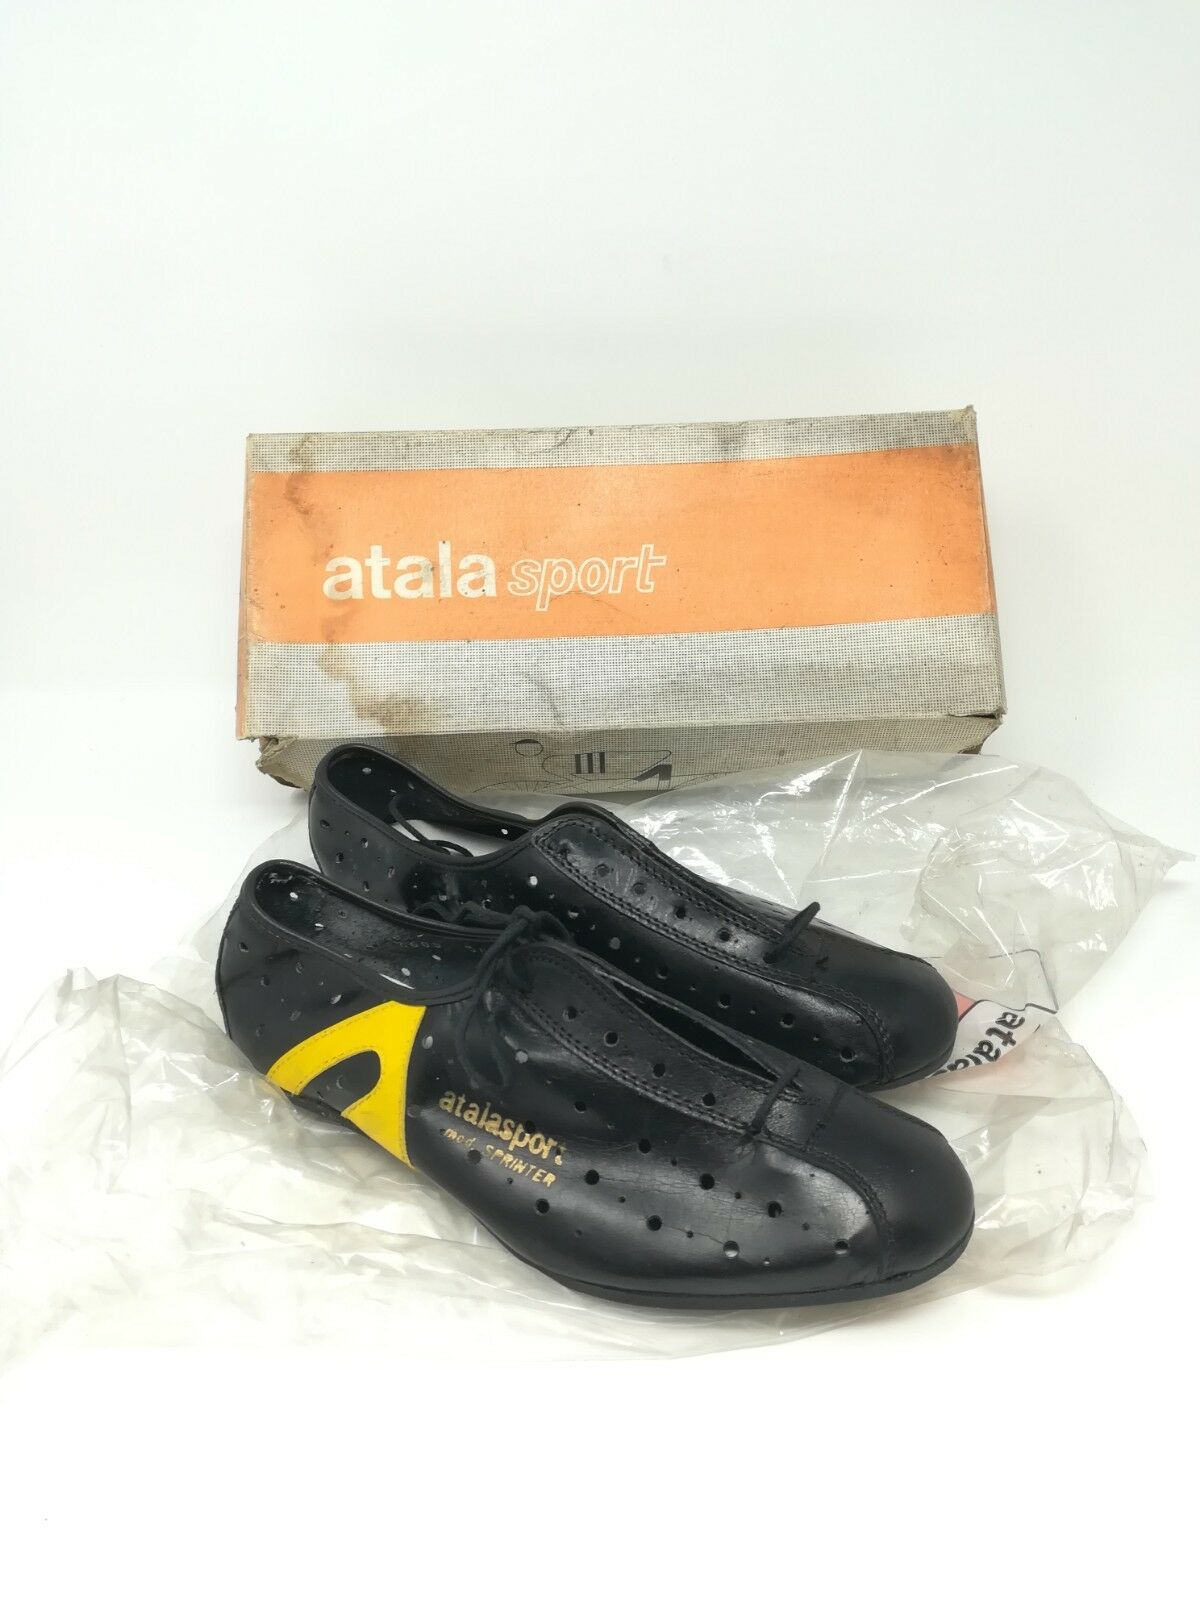 Vintage shoes ciclismo cycling shoes  Atala sport Sprinter  39 NOS